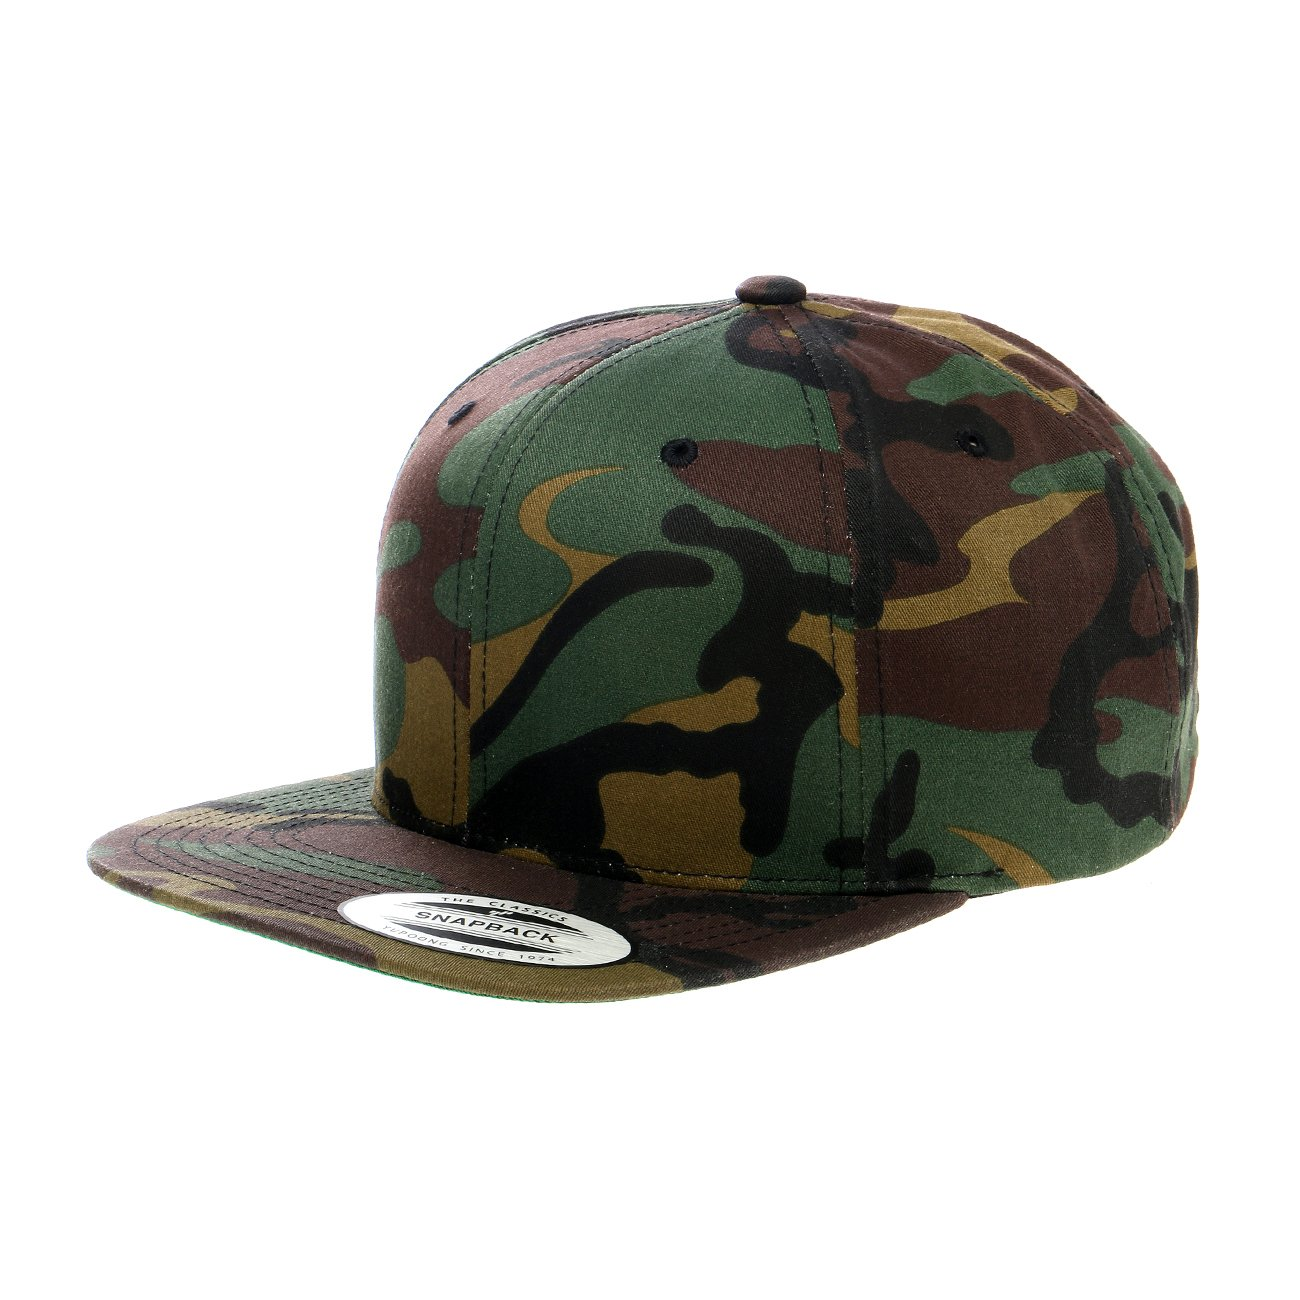 Amazon.com  The Classic Special Edition Camo Flexfit Snapback 6089M - Limited  Edition  Clothing 502793937cbb